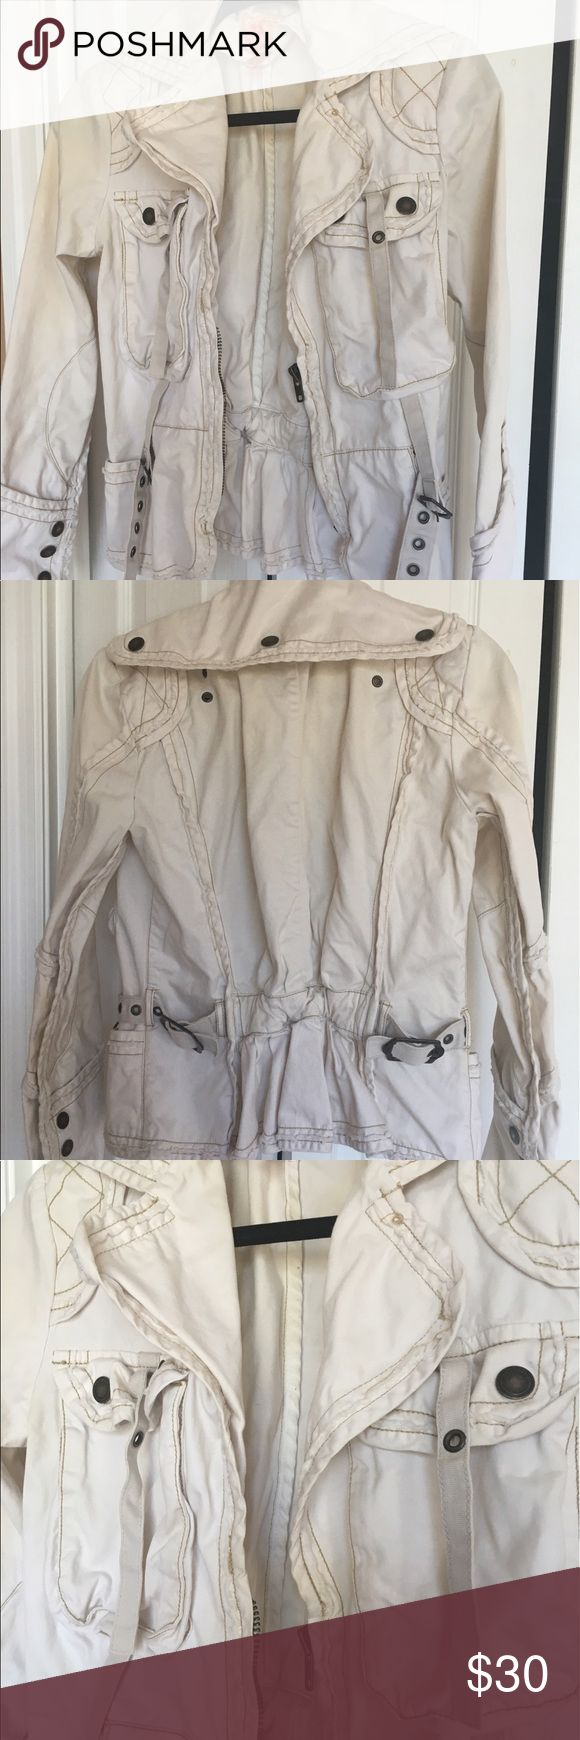 Jacket Safari jacket, worn couple of times Jackets & Coats Utility Jackets